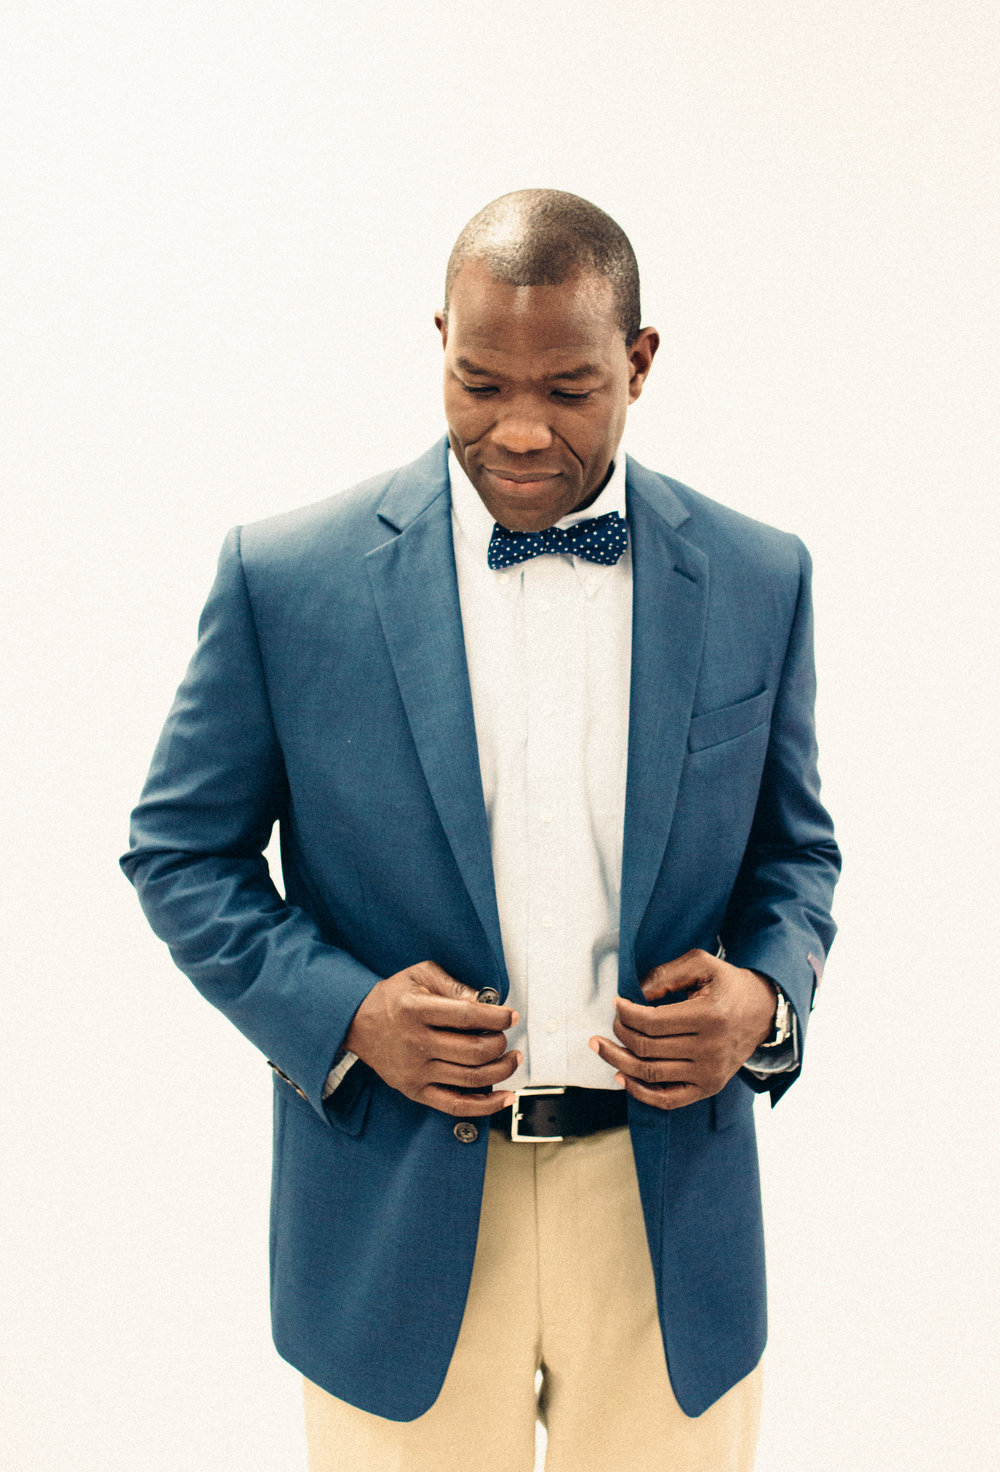 Anthony Anderson (JC Penney at Stones River Mall): Connection by Michael Strahan sport jacket, Stafford shirt, Dockers chino slacks, and Stafford bow tie